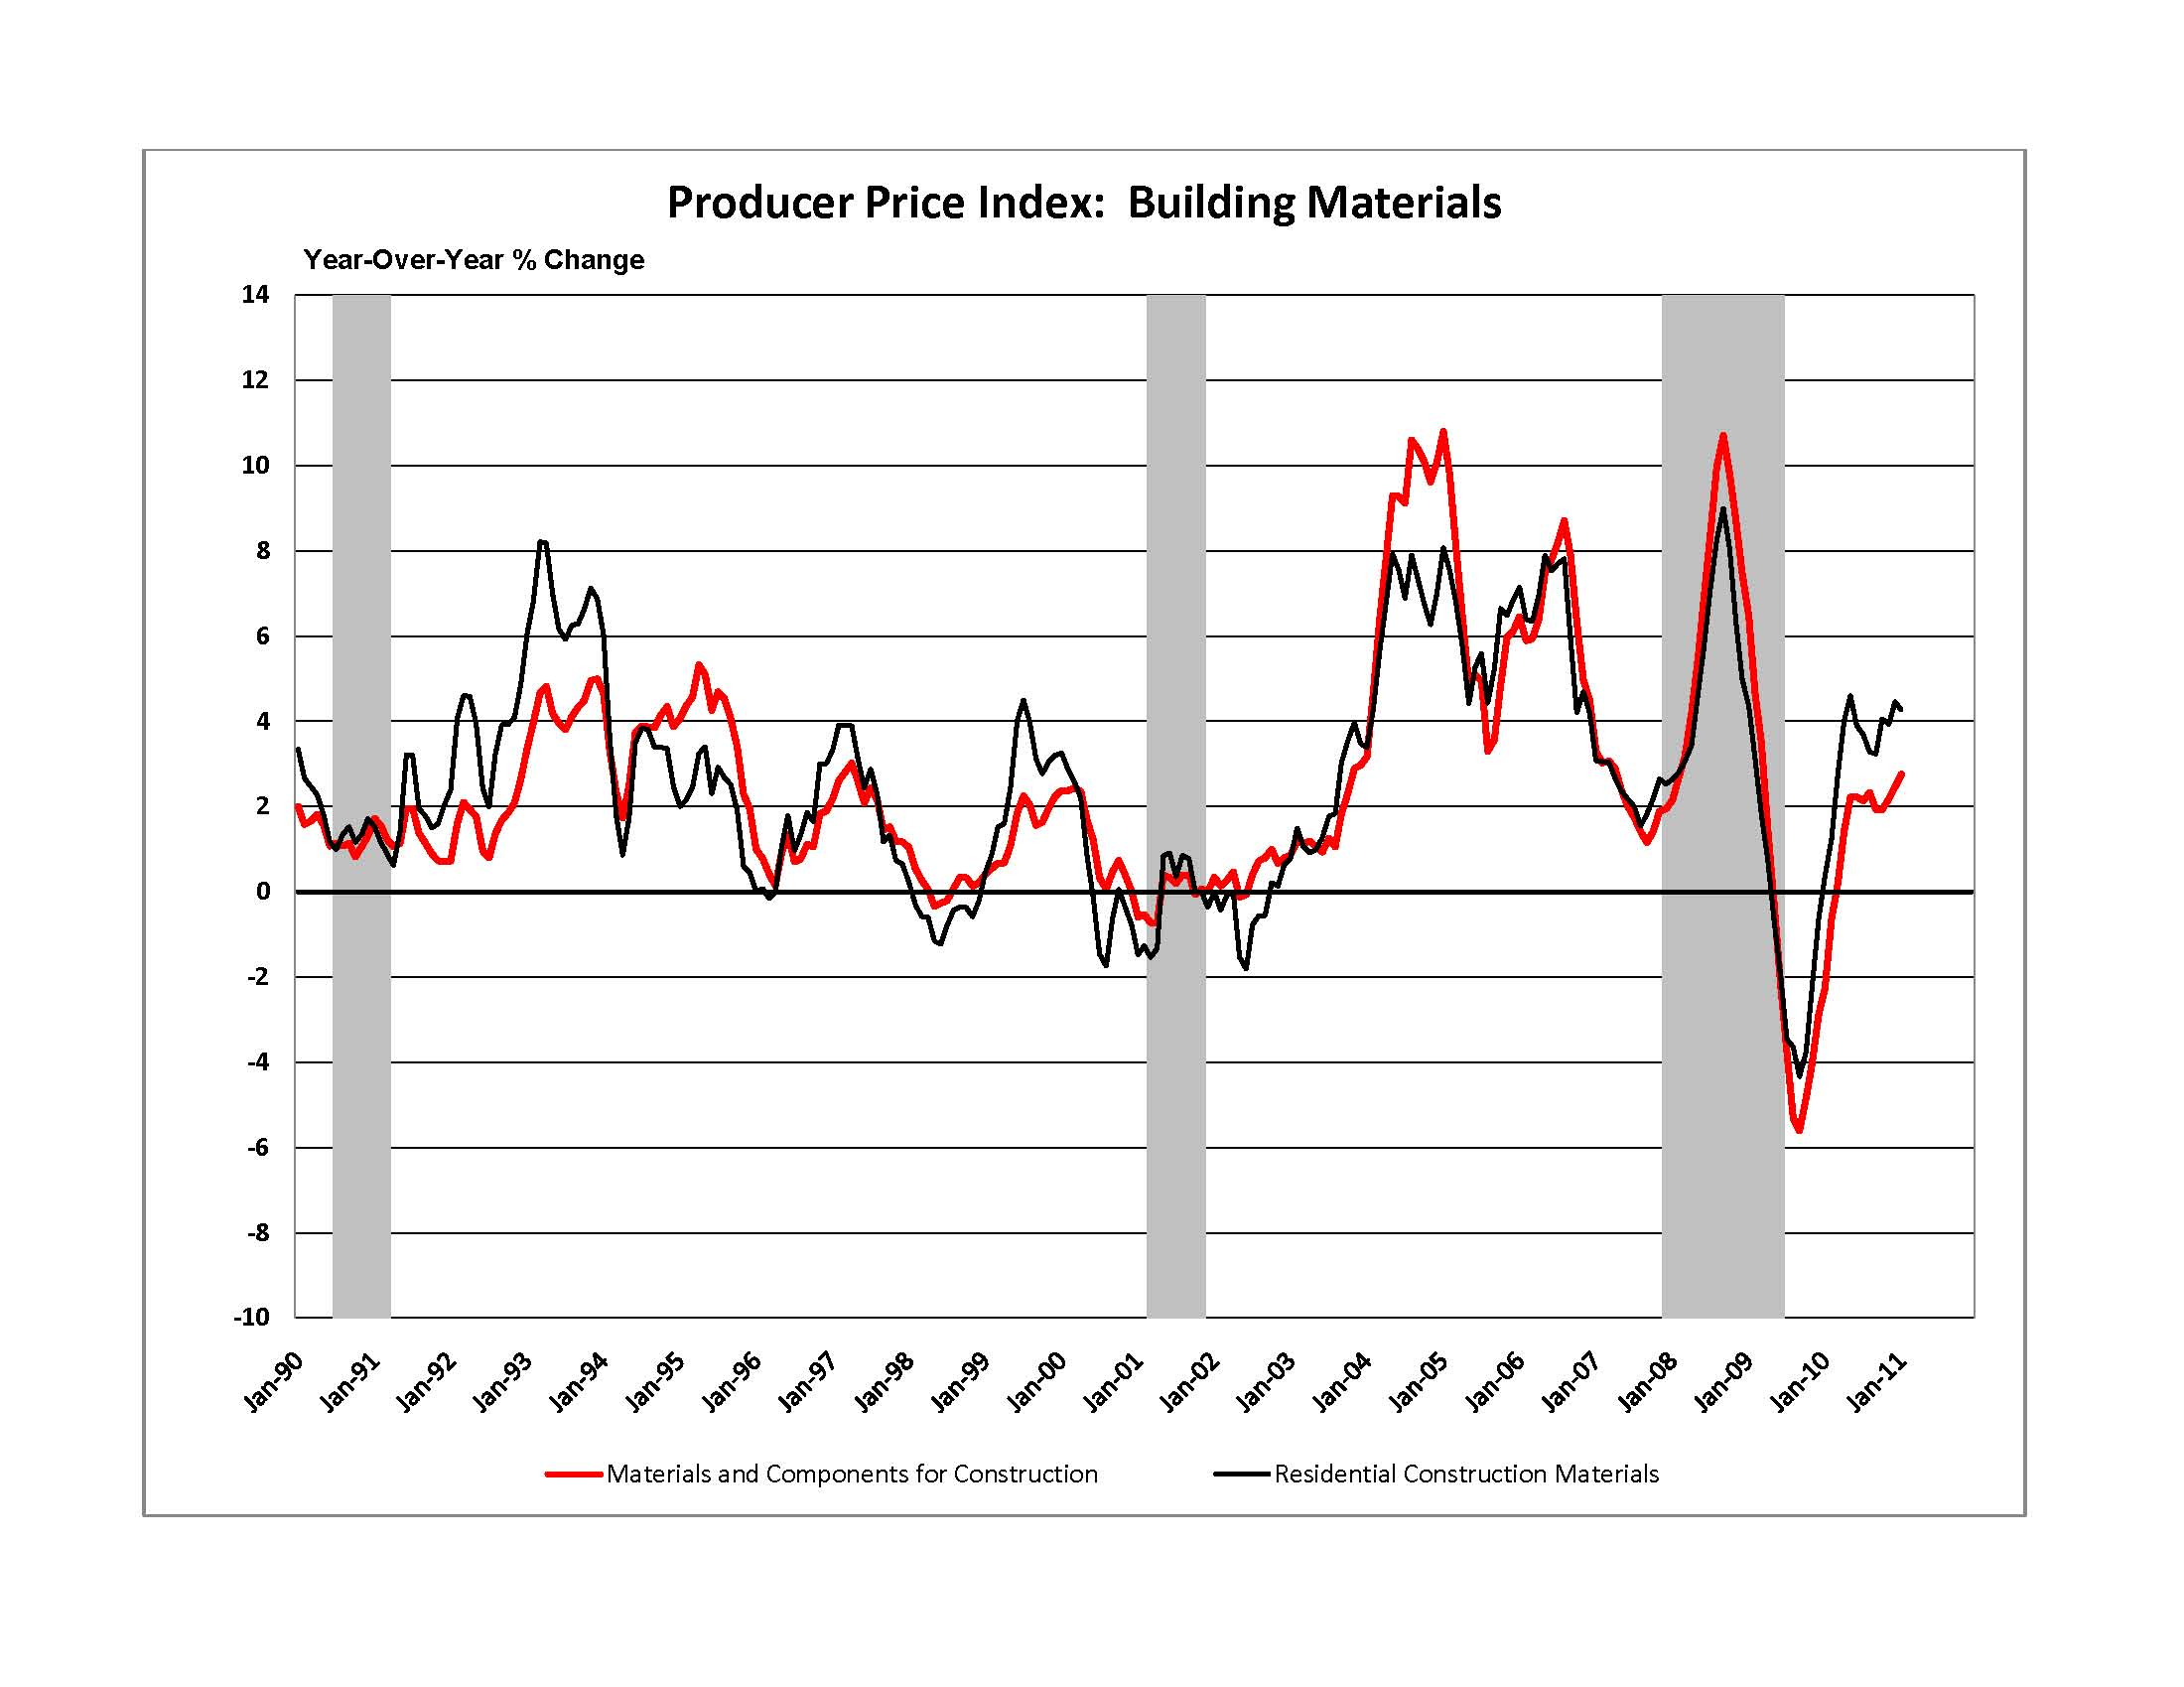 Residential Building Materials Prices Higher Mainly Due to ...